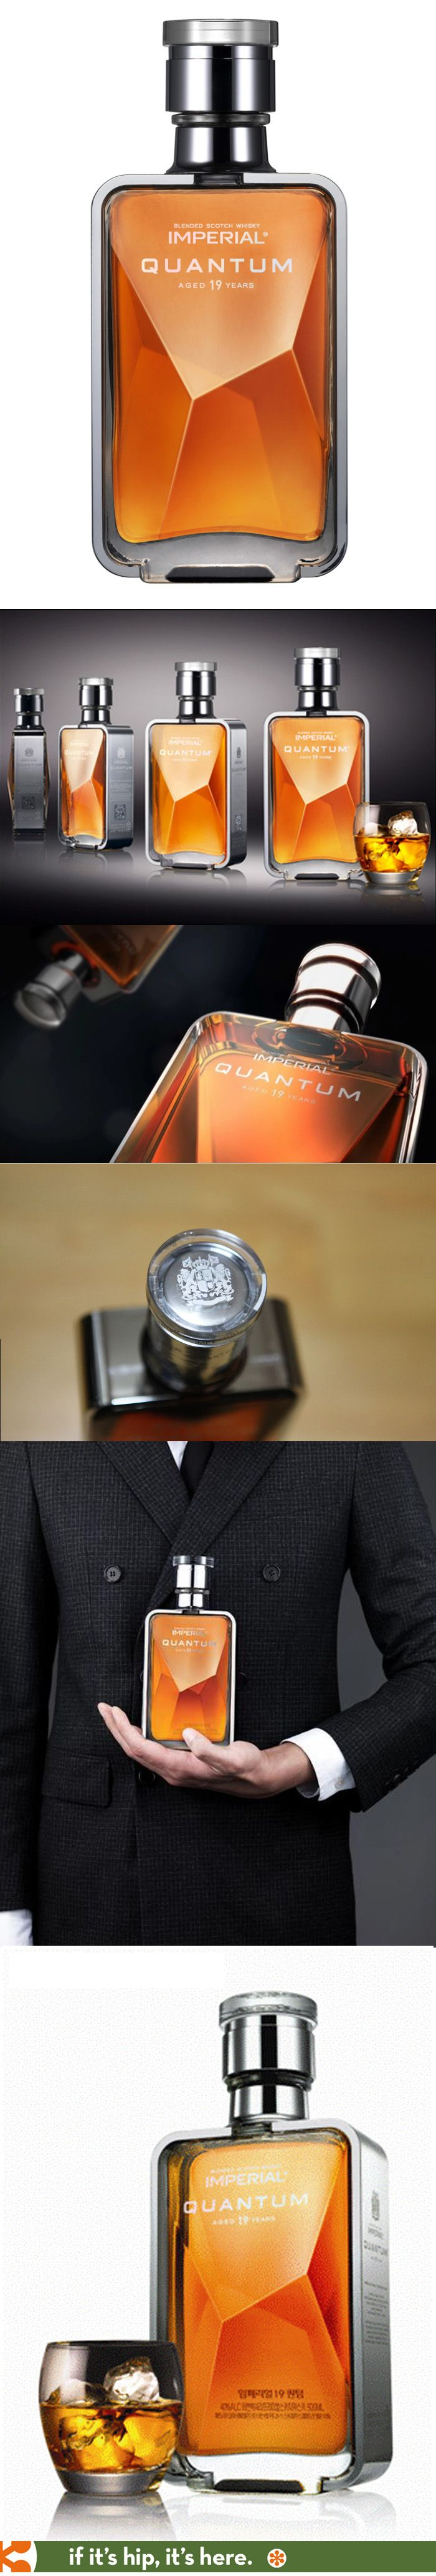 Pernod Ricard's Imperial Quantum 19 Year Old Whiskey is in a beautiful bottle. Spirit mxm